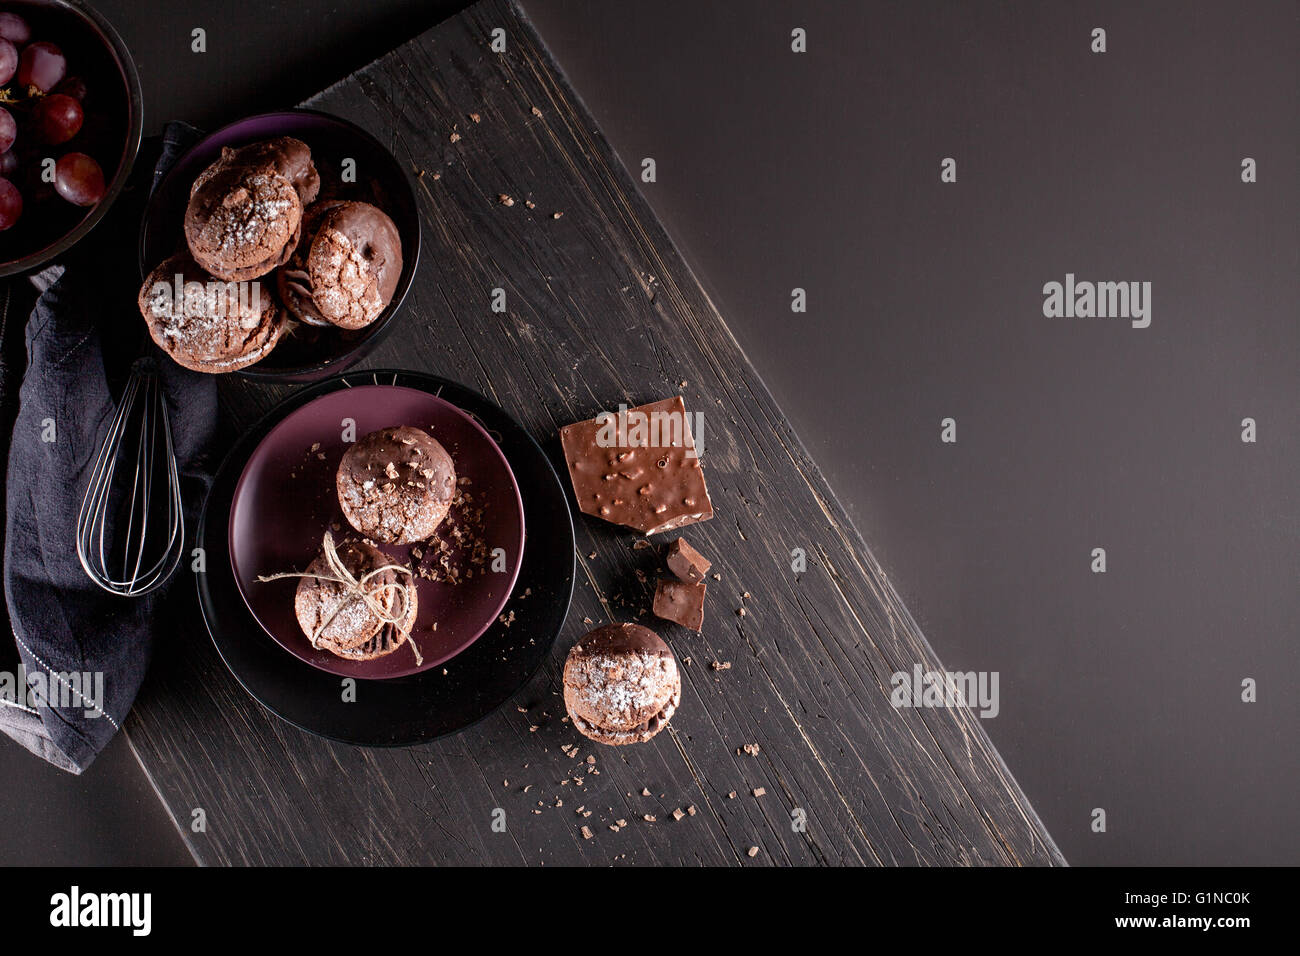 Italian maroni cookies with pieces of chocolate on old wooden background - Stock Image